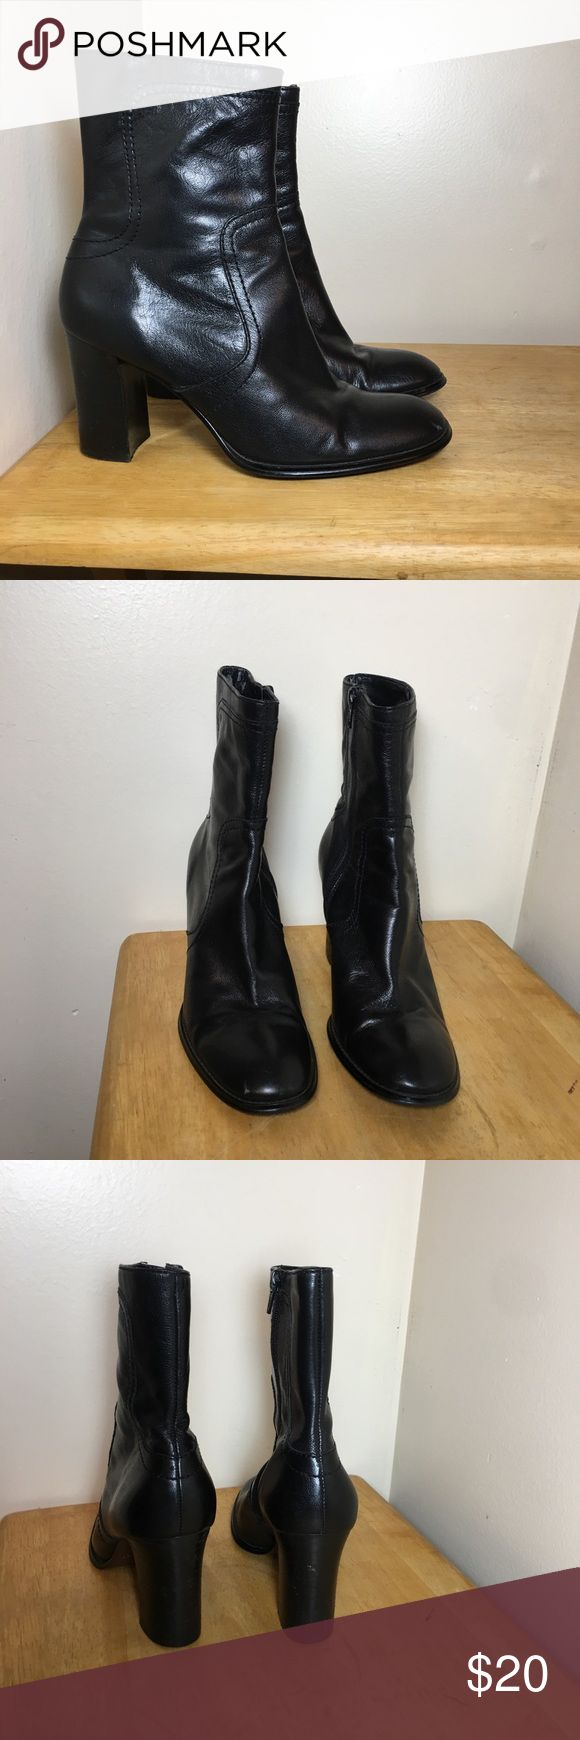 Black booties Black booties  Size 7 Great condition  Nine West Scrape mark Nine West Shoes Ankle Boots & Booties